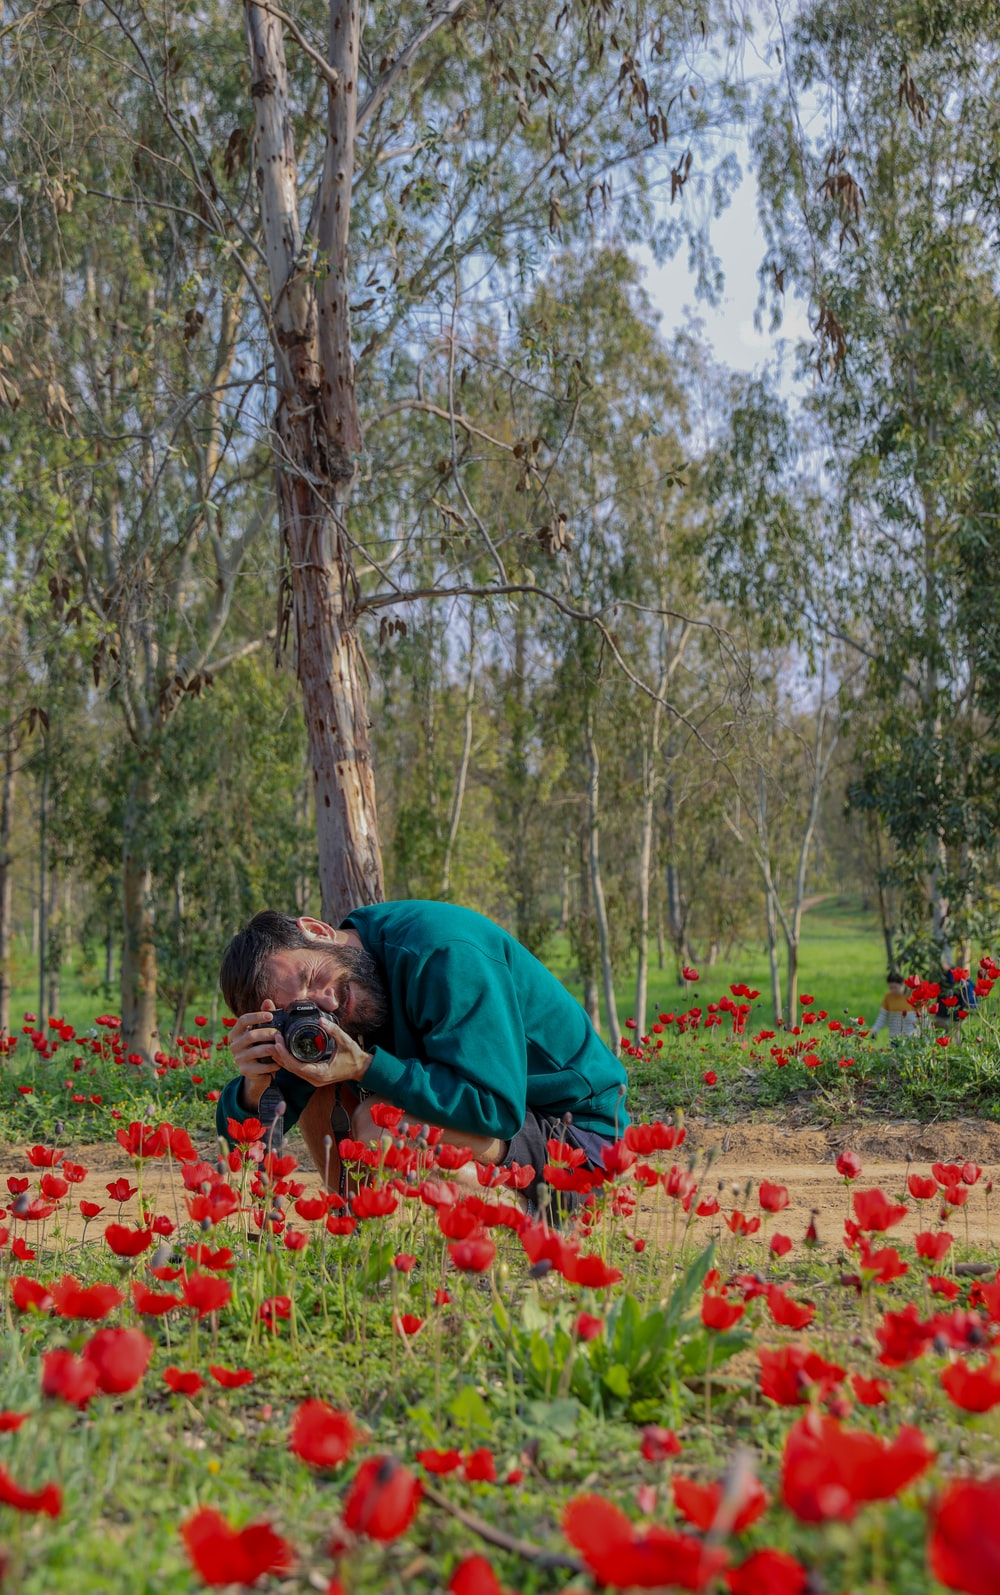 man in green hoodie and woman in blue jacket kissing on red flower field during daytime